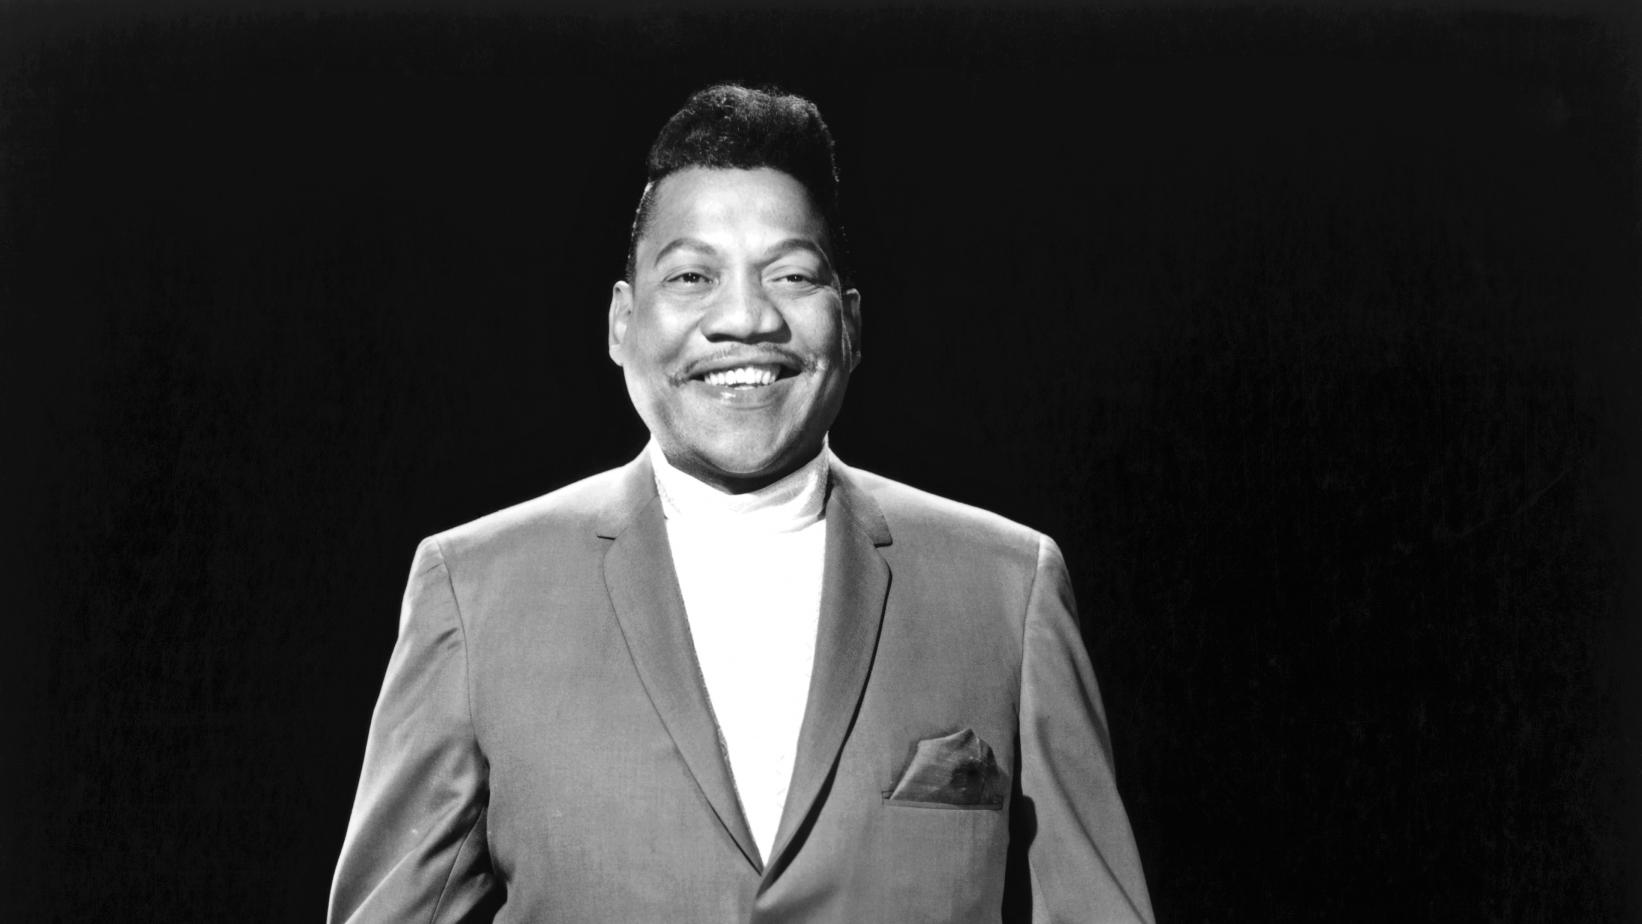 Caption: Bobby Blue Bland